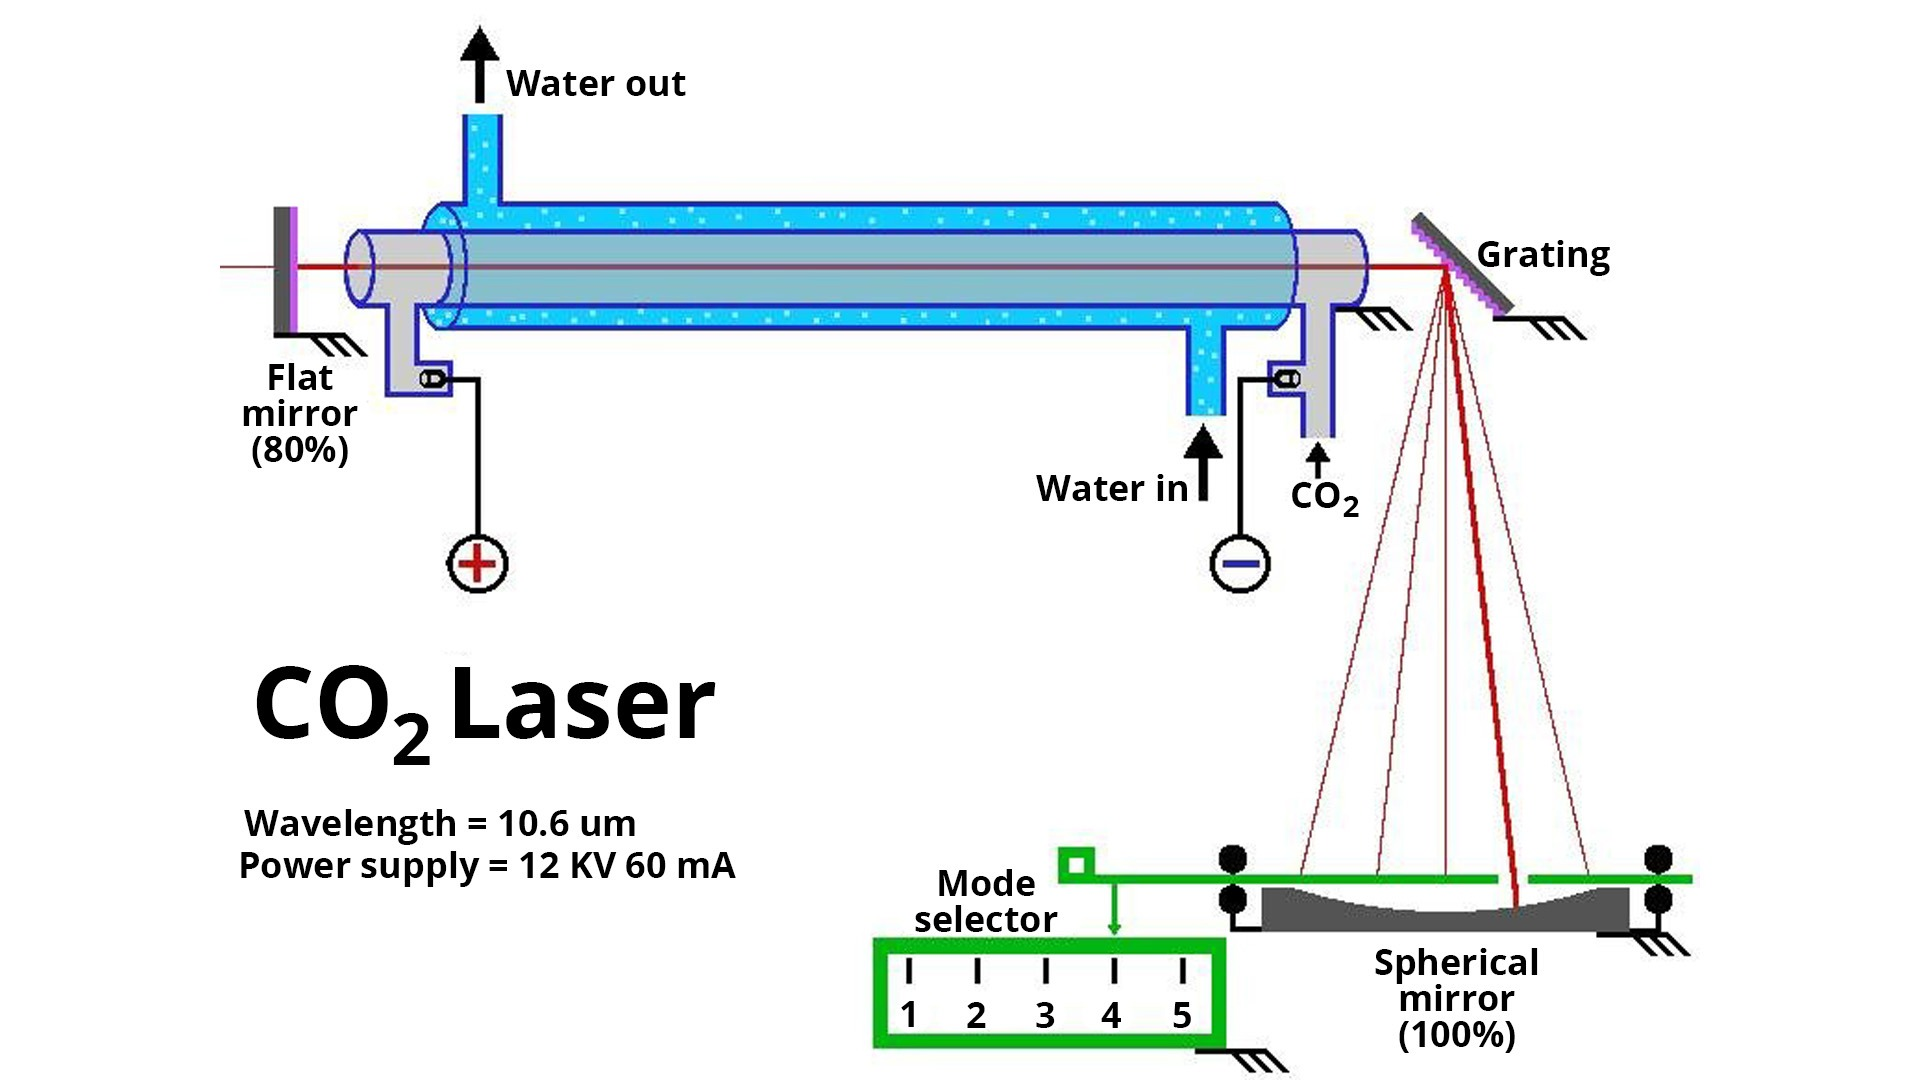 Hệ thống phát laser co2 Fractional REXCO